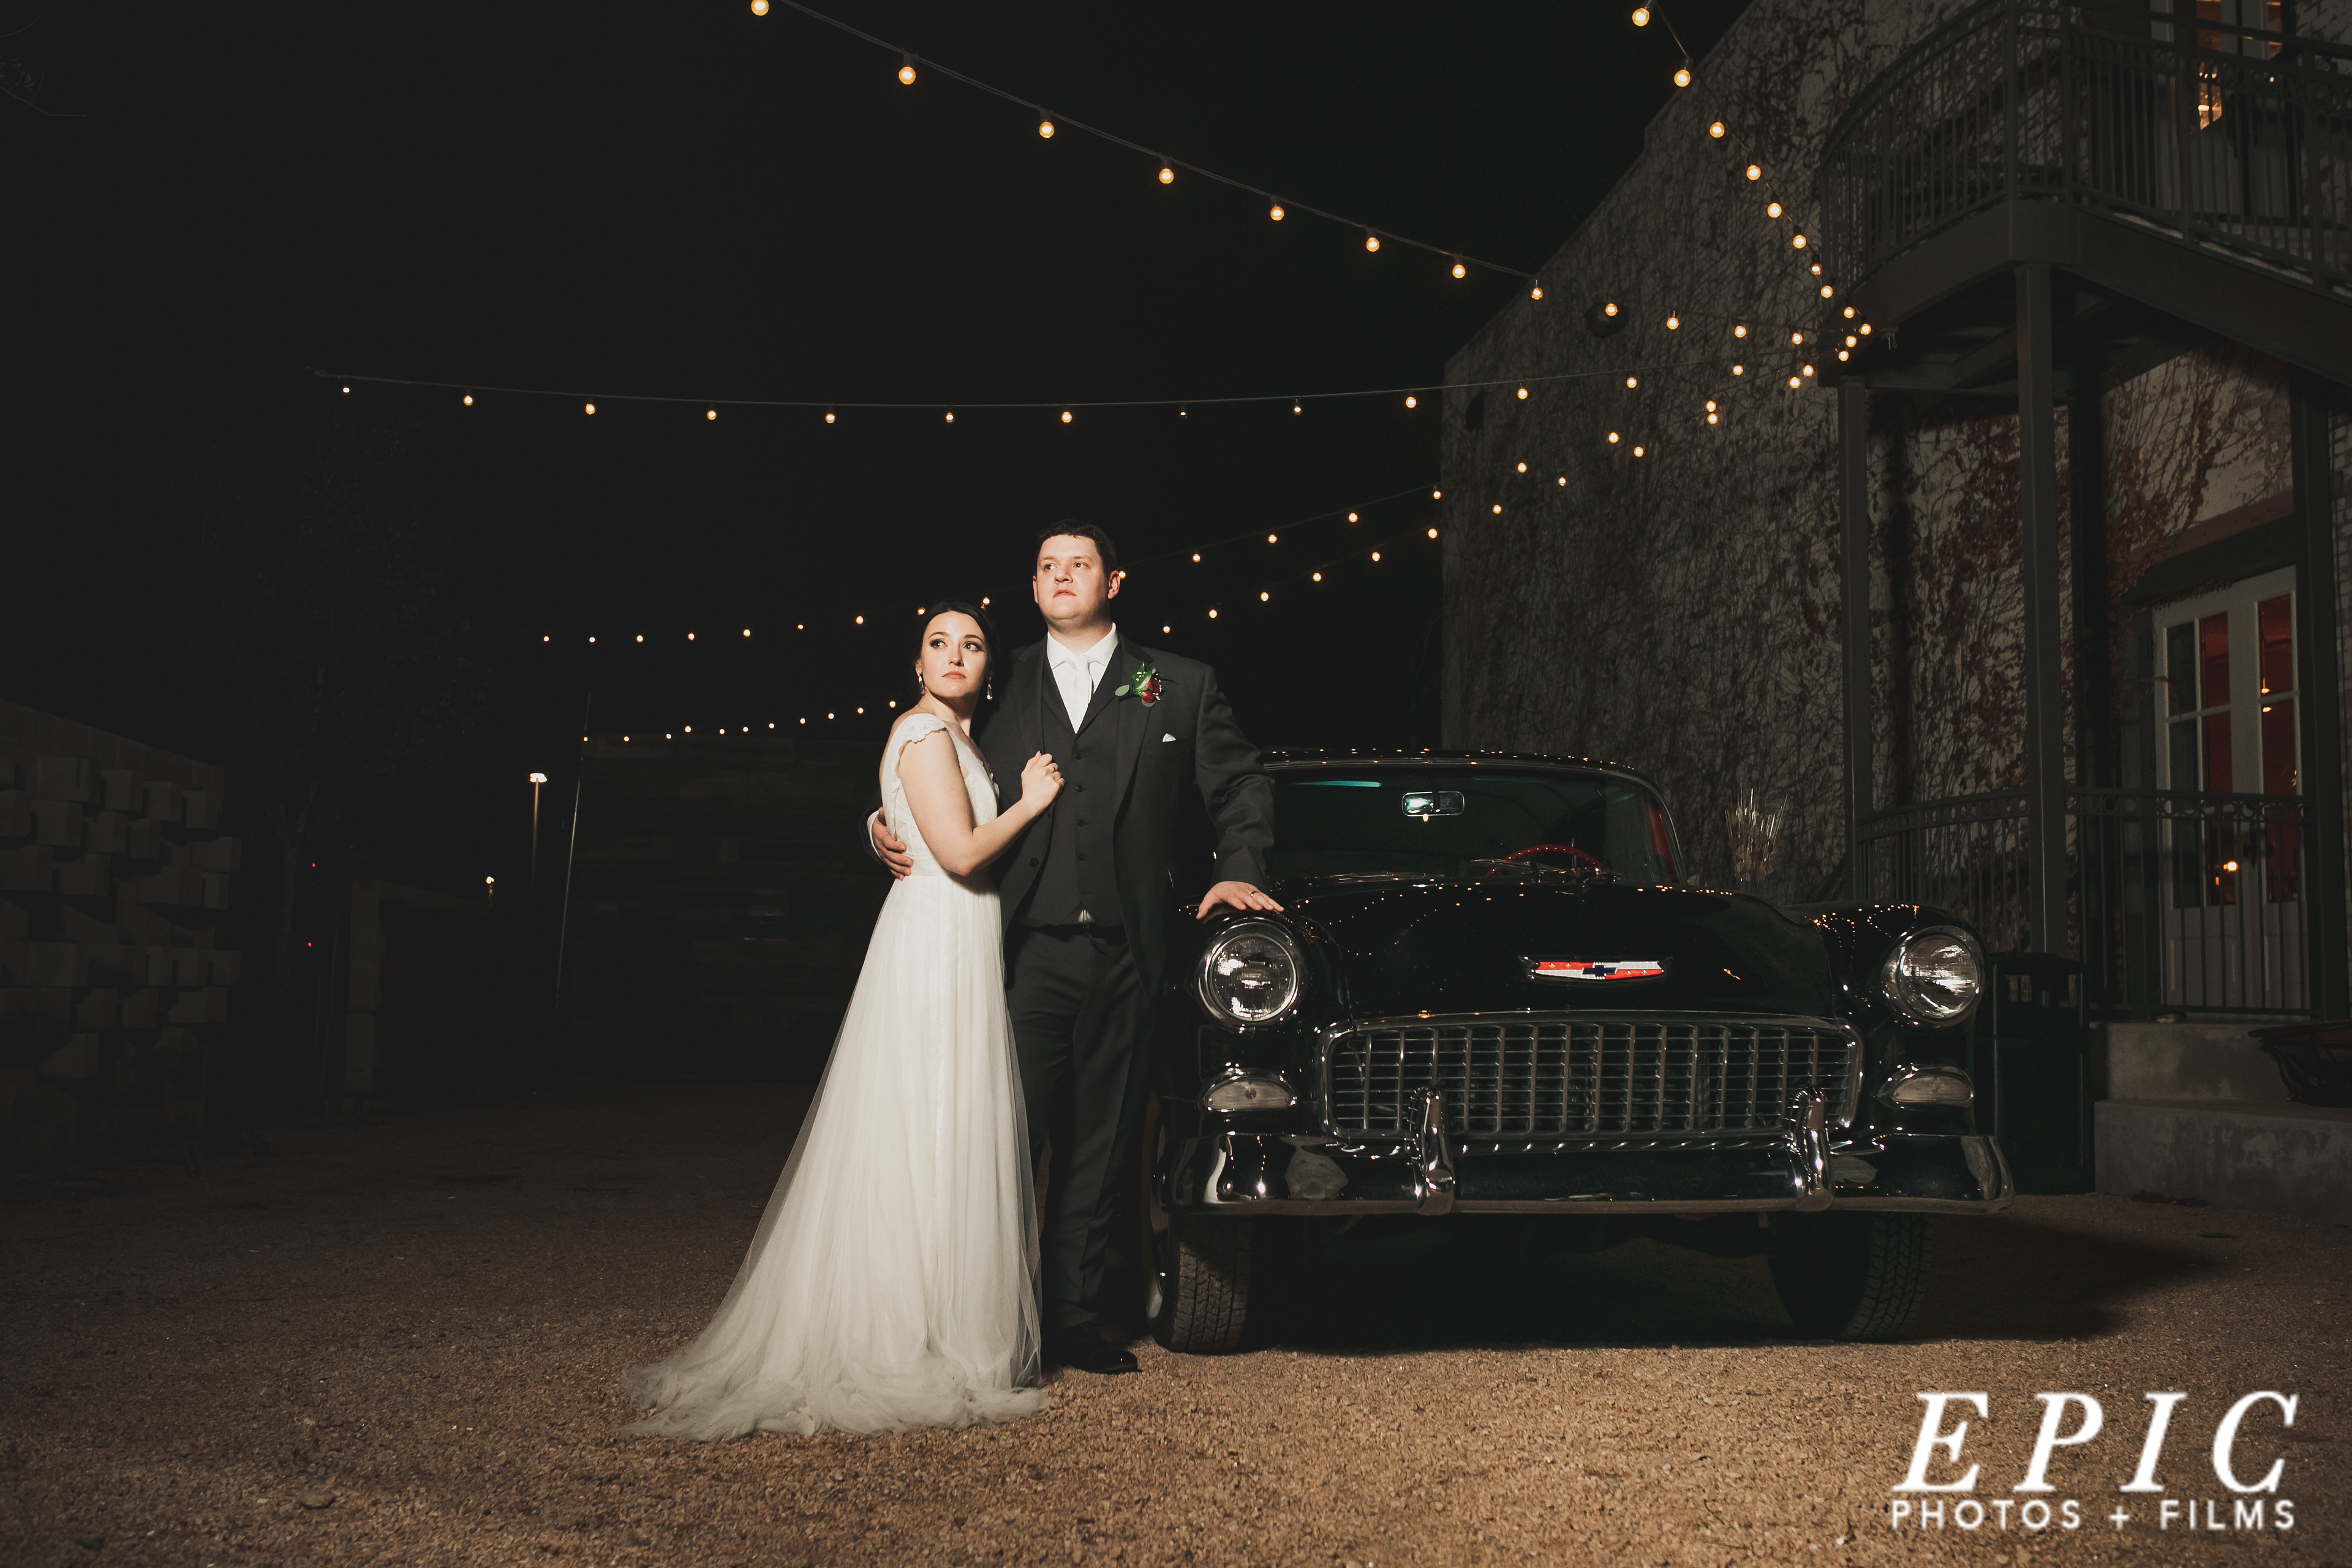 Classy night time portraits of the couple on their wedding day at The Brik Venue